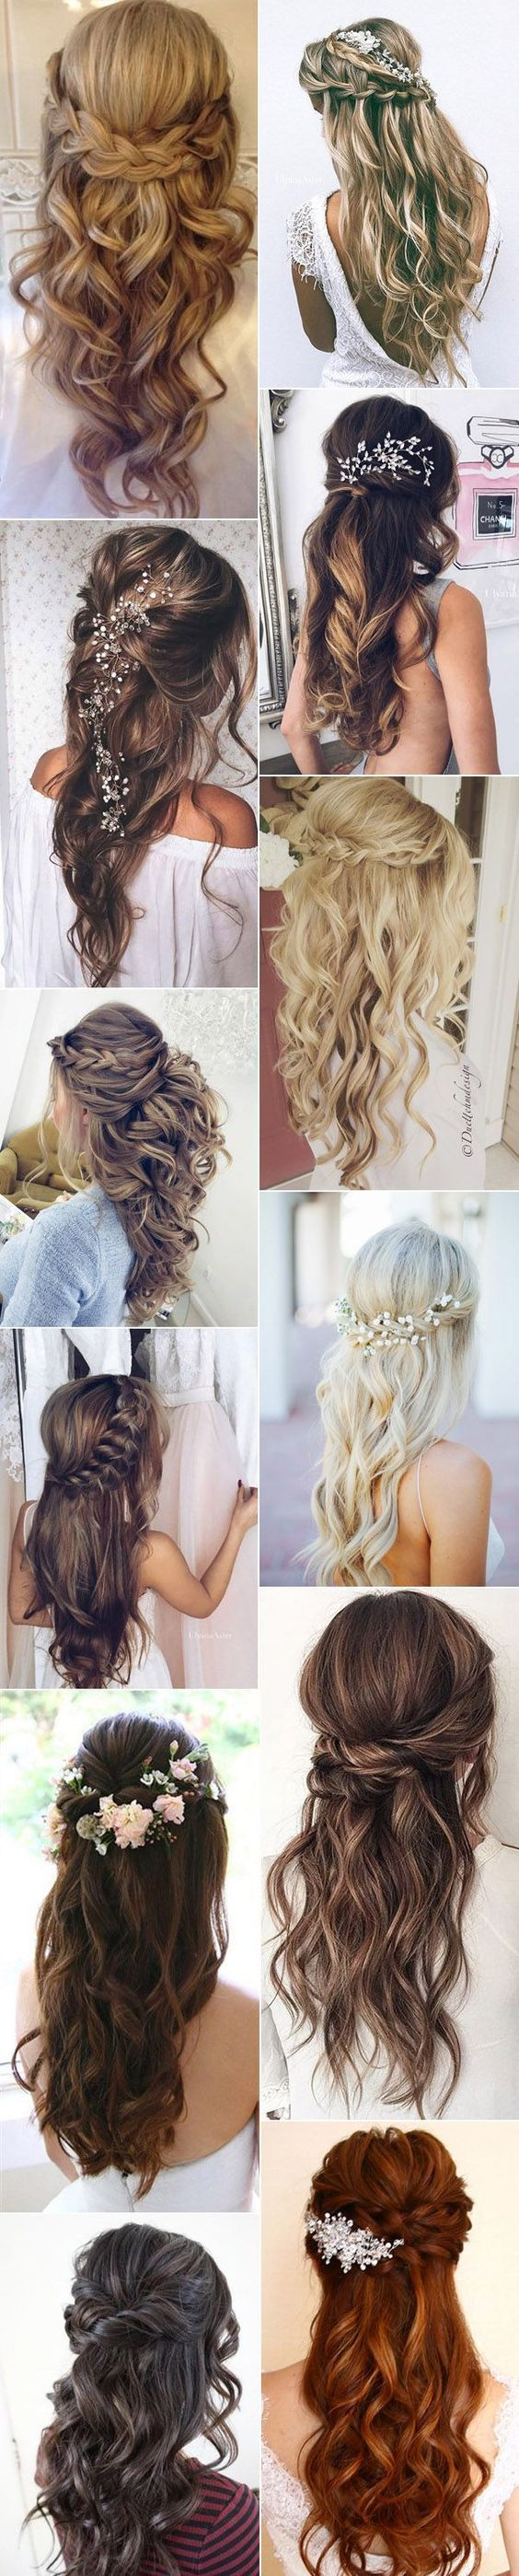 amazing 12 wedding